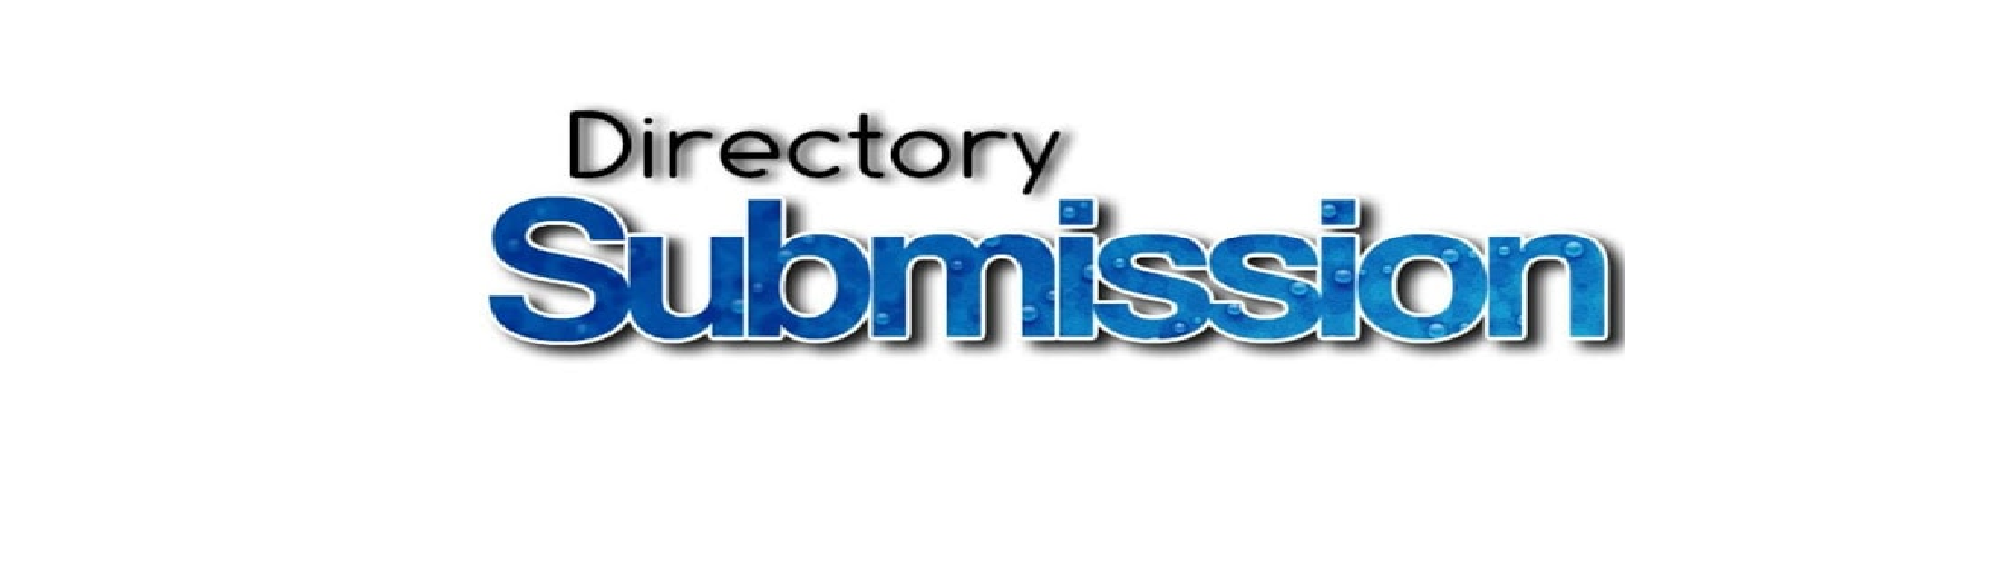 top 10 directory submission sites